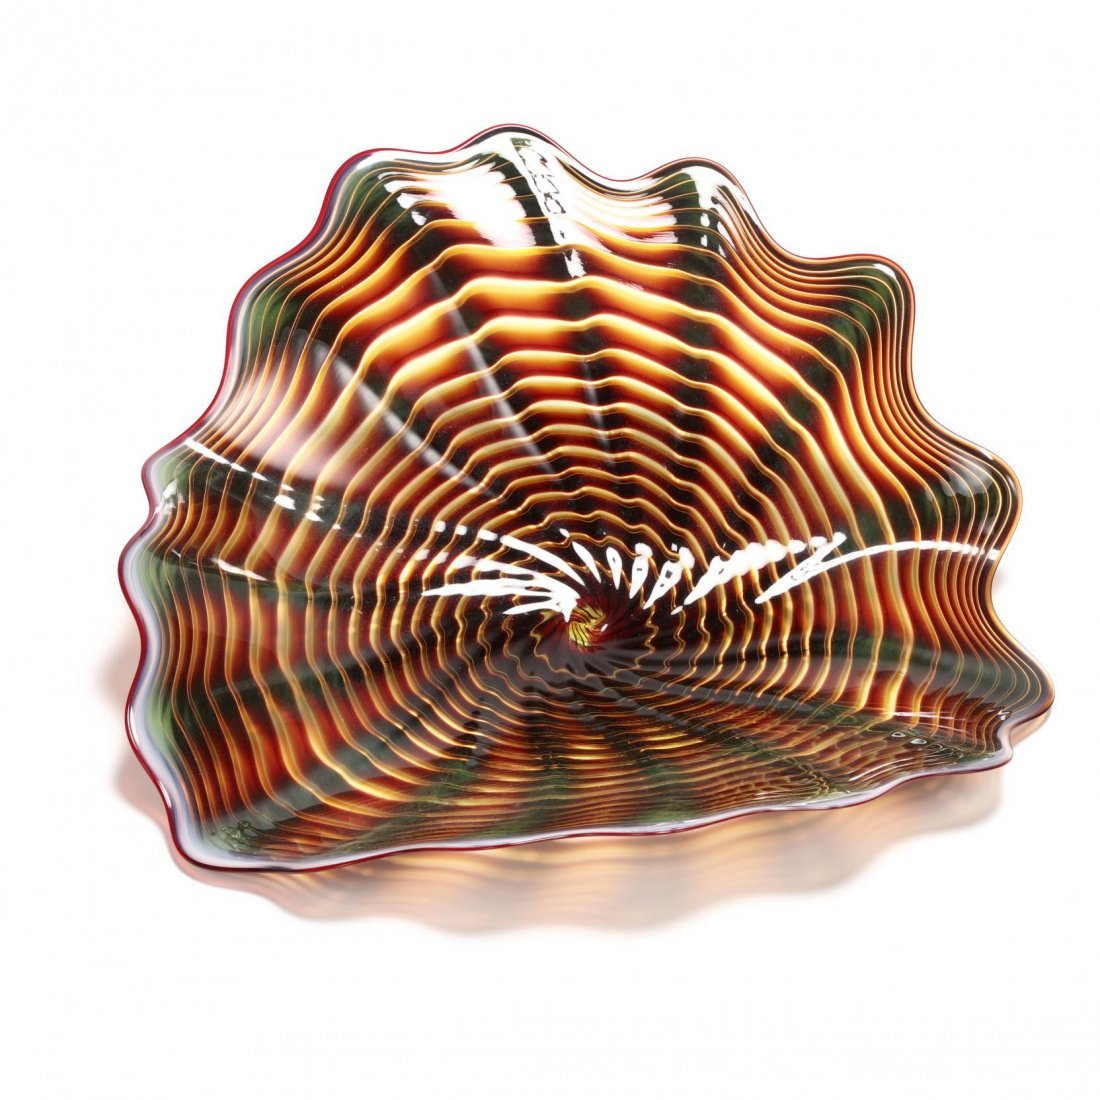 Dale Chihuly, Persian Glass Sculpture - 3